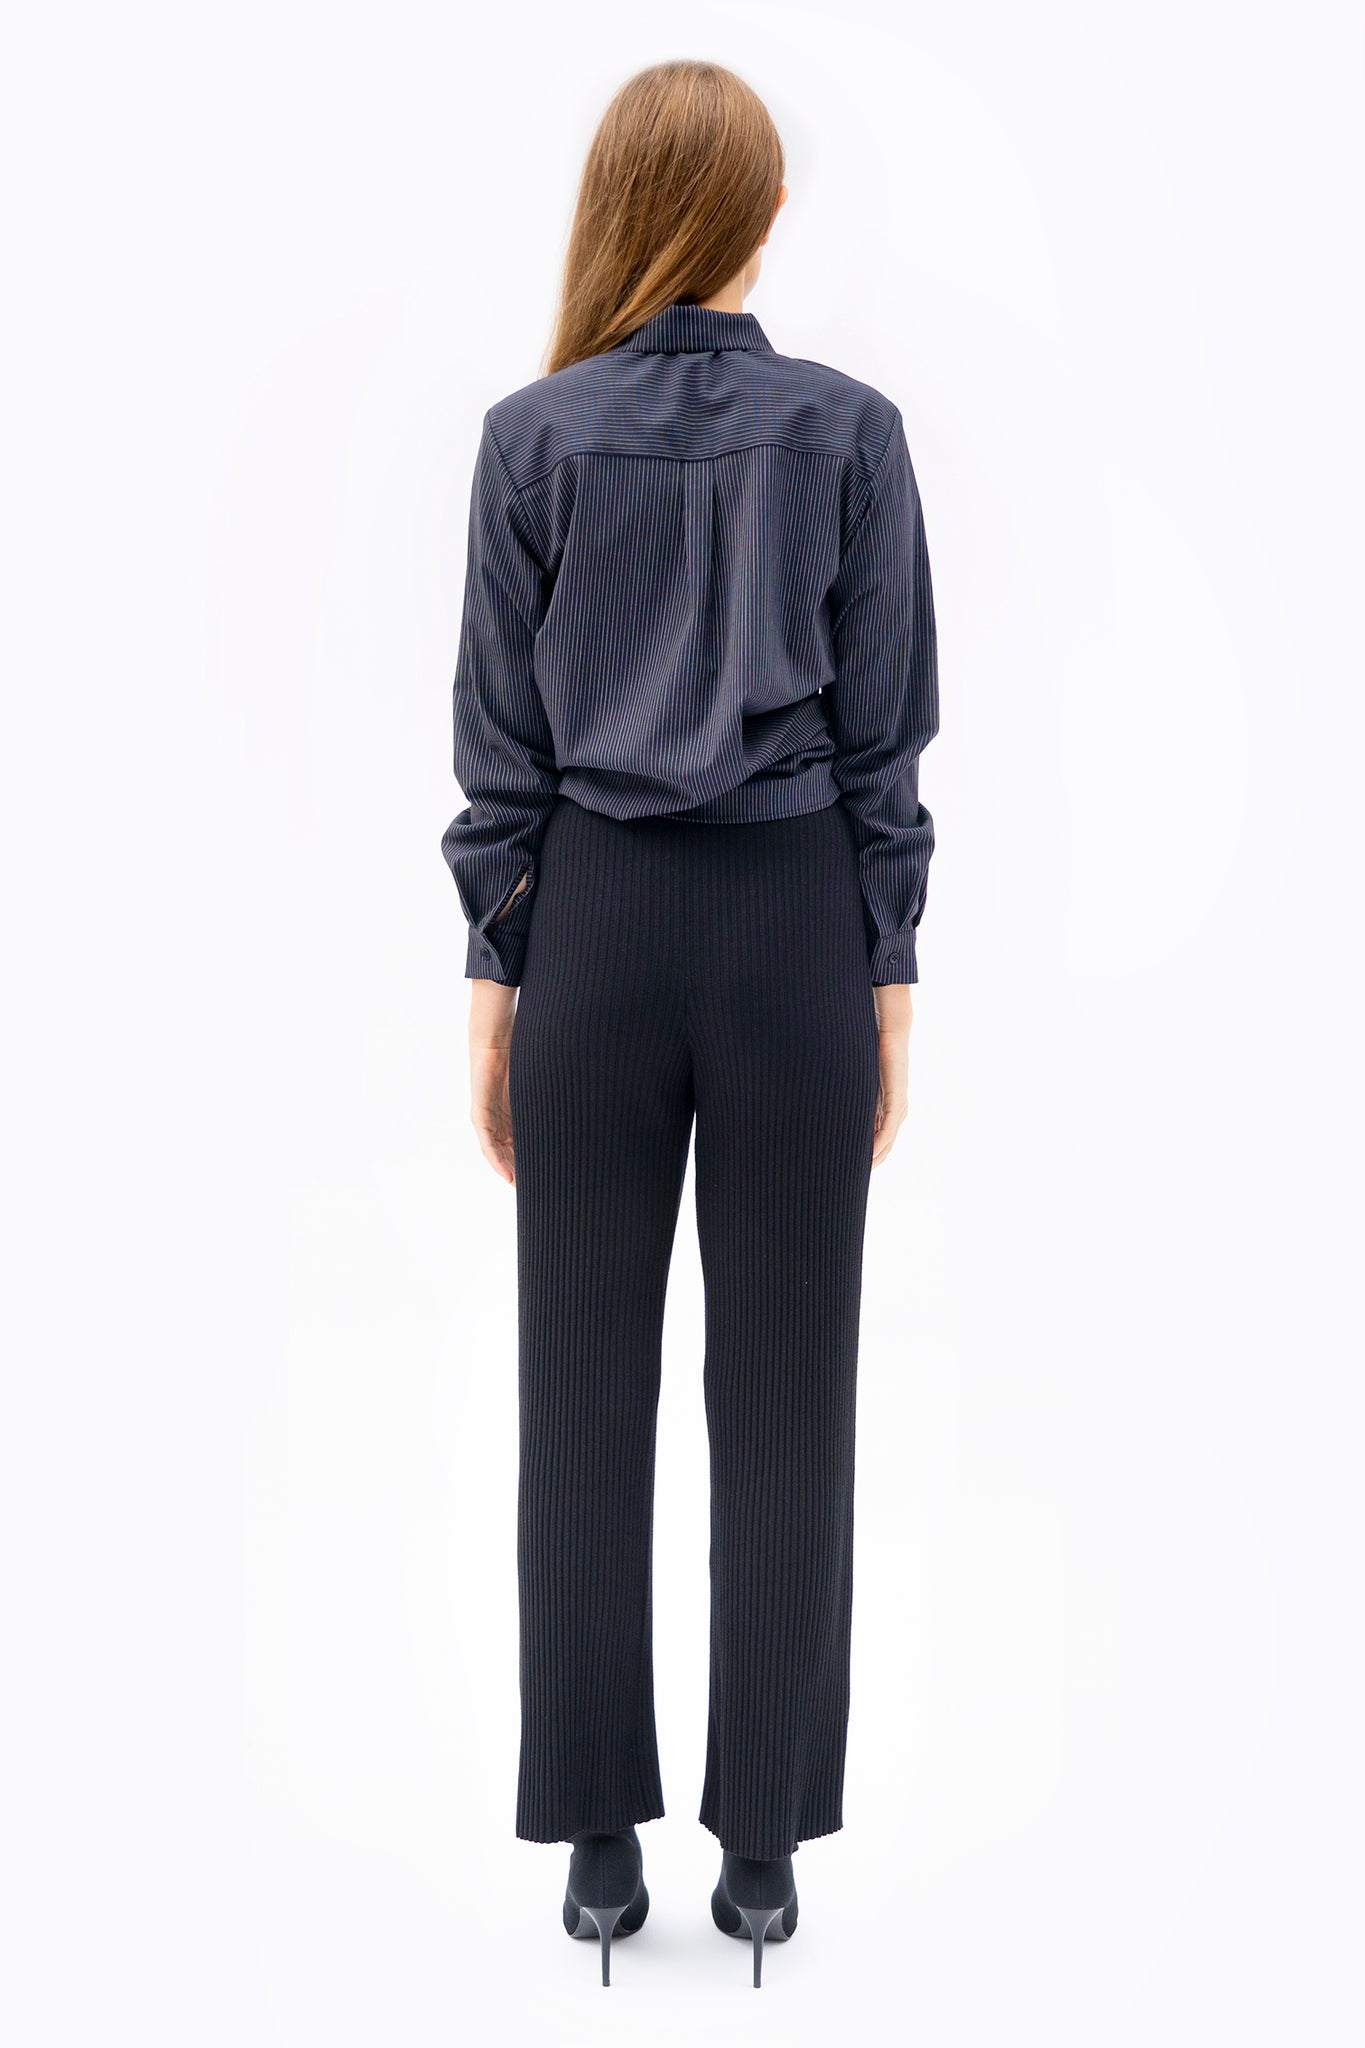 Ade Velkon - Rib Knit Pants